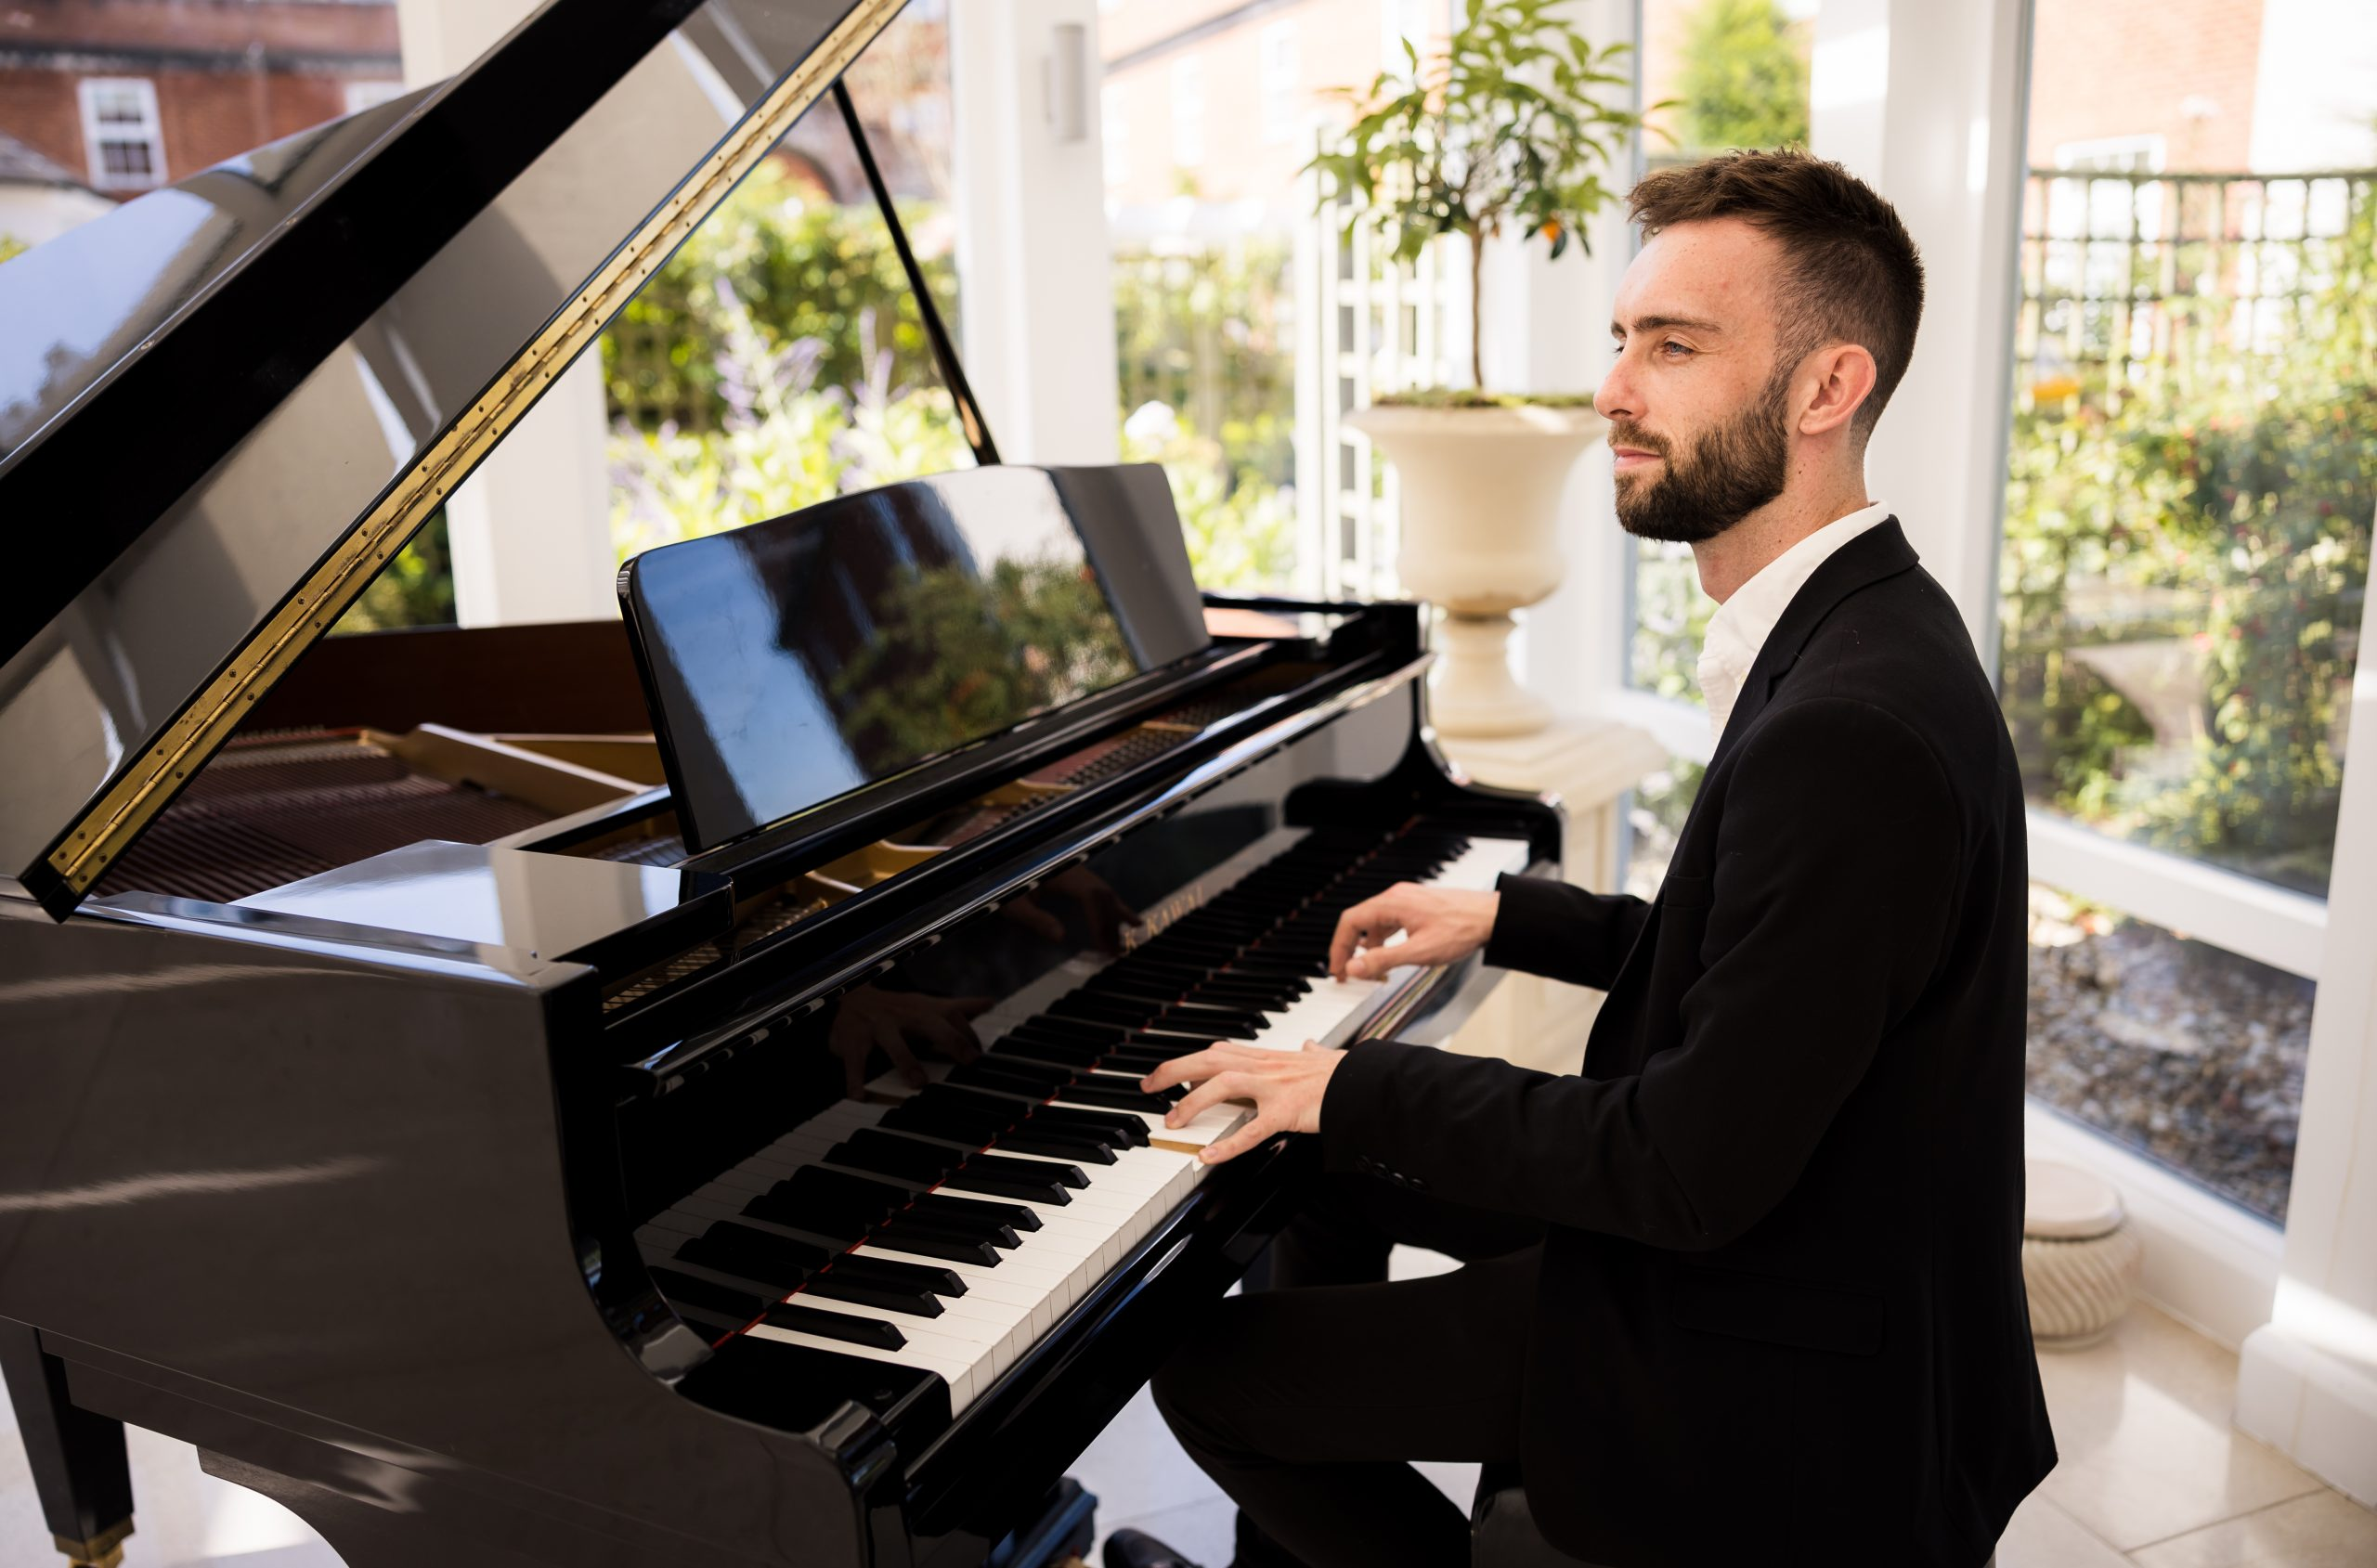 Solo pianist at grand piano for events weddings parties and functions